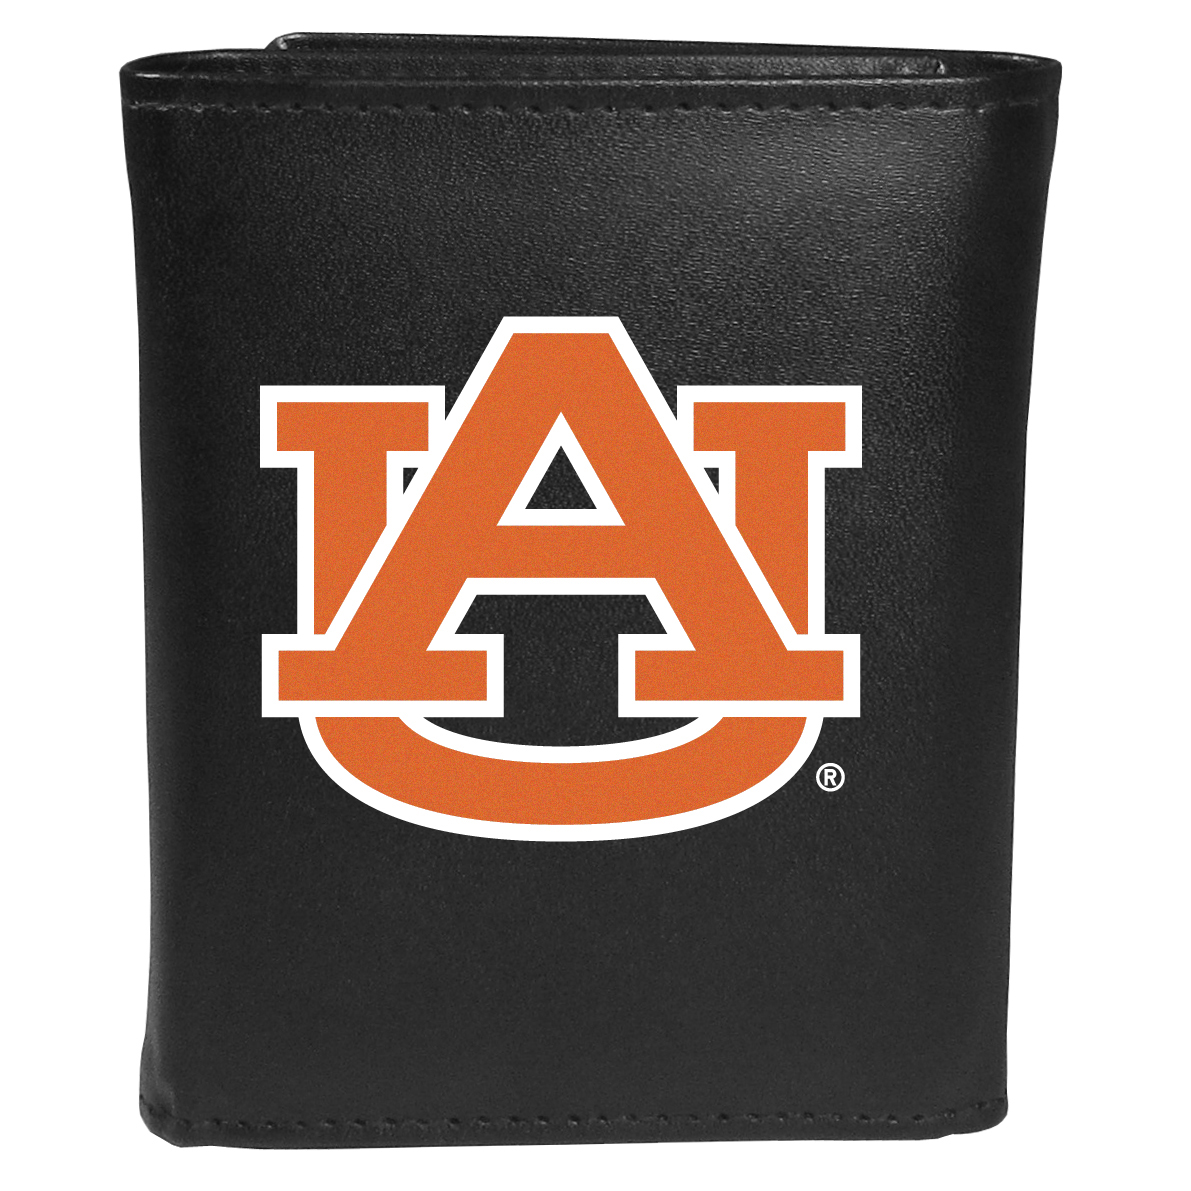 Auburn Tigers Tri-fold Wallet Large Logo - Sports fans do not have to sacrifice style with this classic tri-fold wallet that sports theAuburn Tigers?extra large logo. This men's fashion accessory has a leather grain look and expert craftmanship for a quality wallet at a great price. The wallet features inner credit card slots, windowed ID slot and a large billfold pocket. The front of the wallet features an extra large printed team logo.